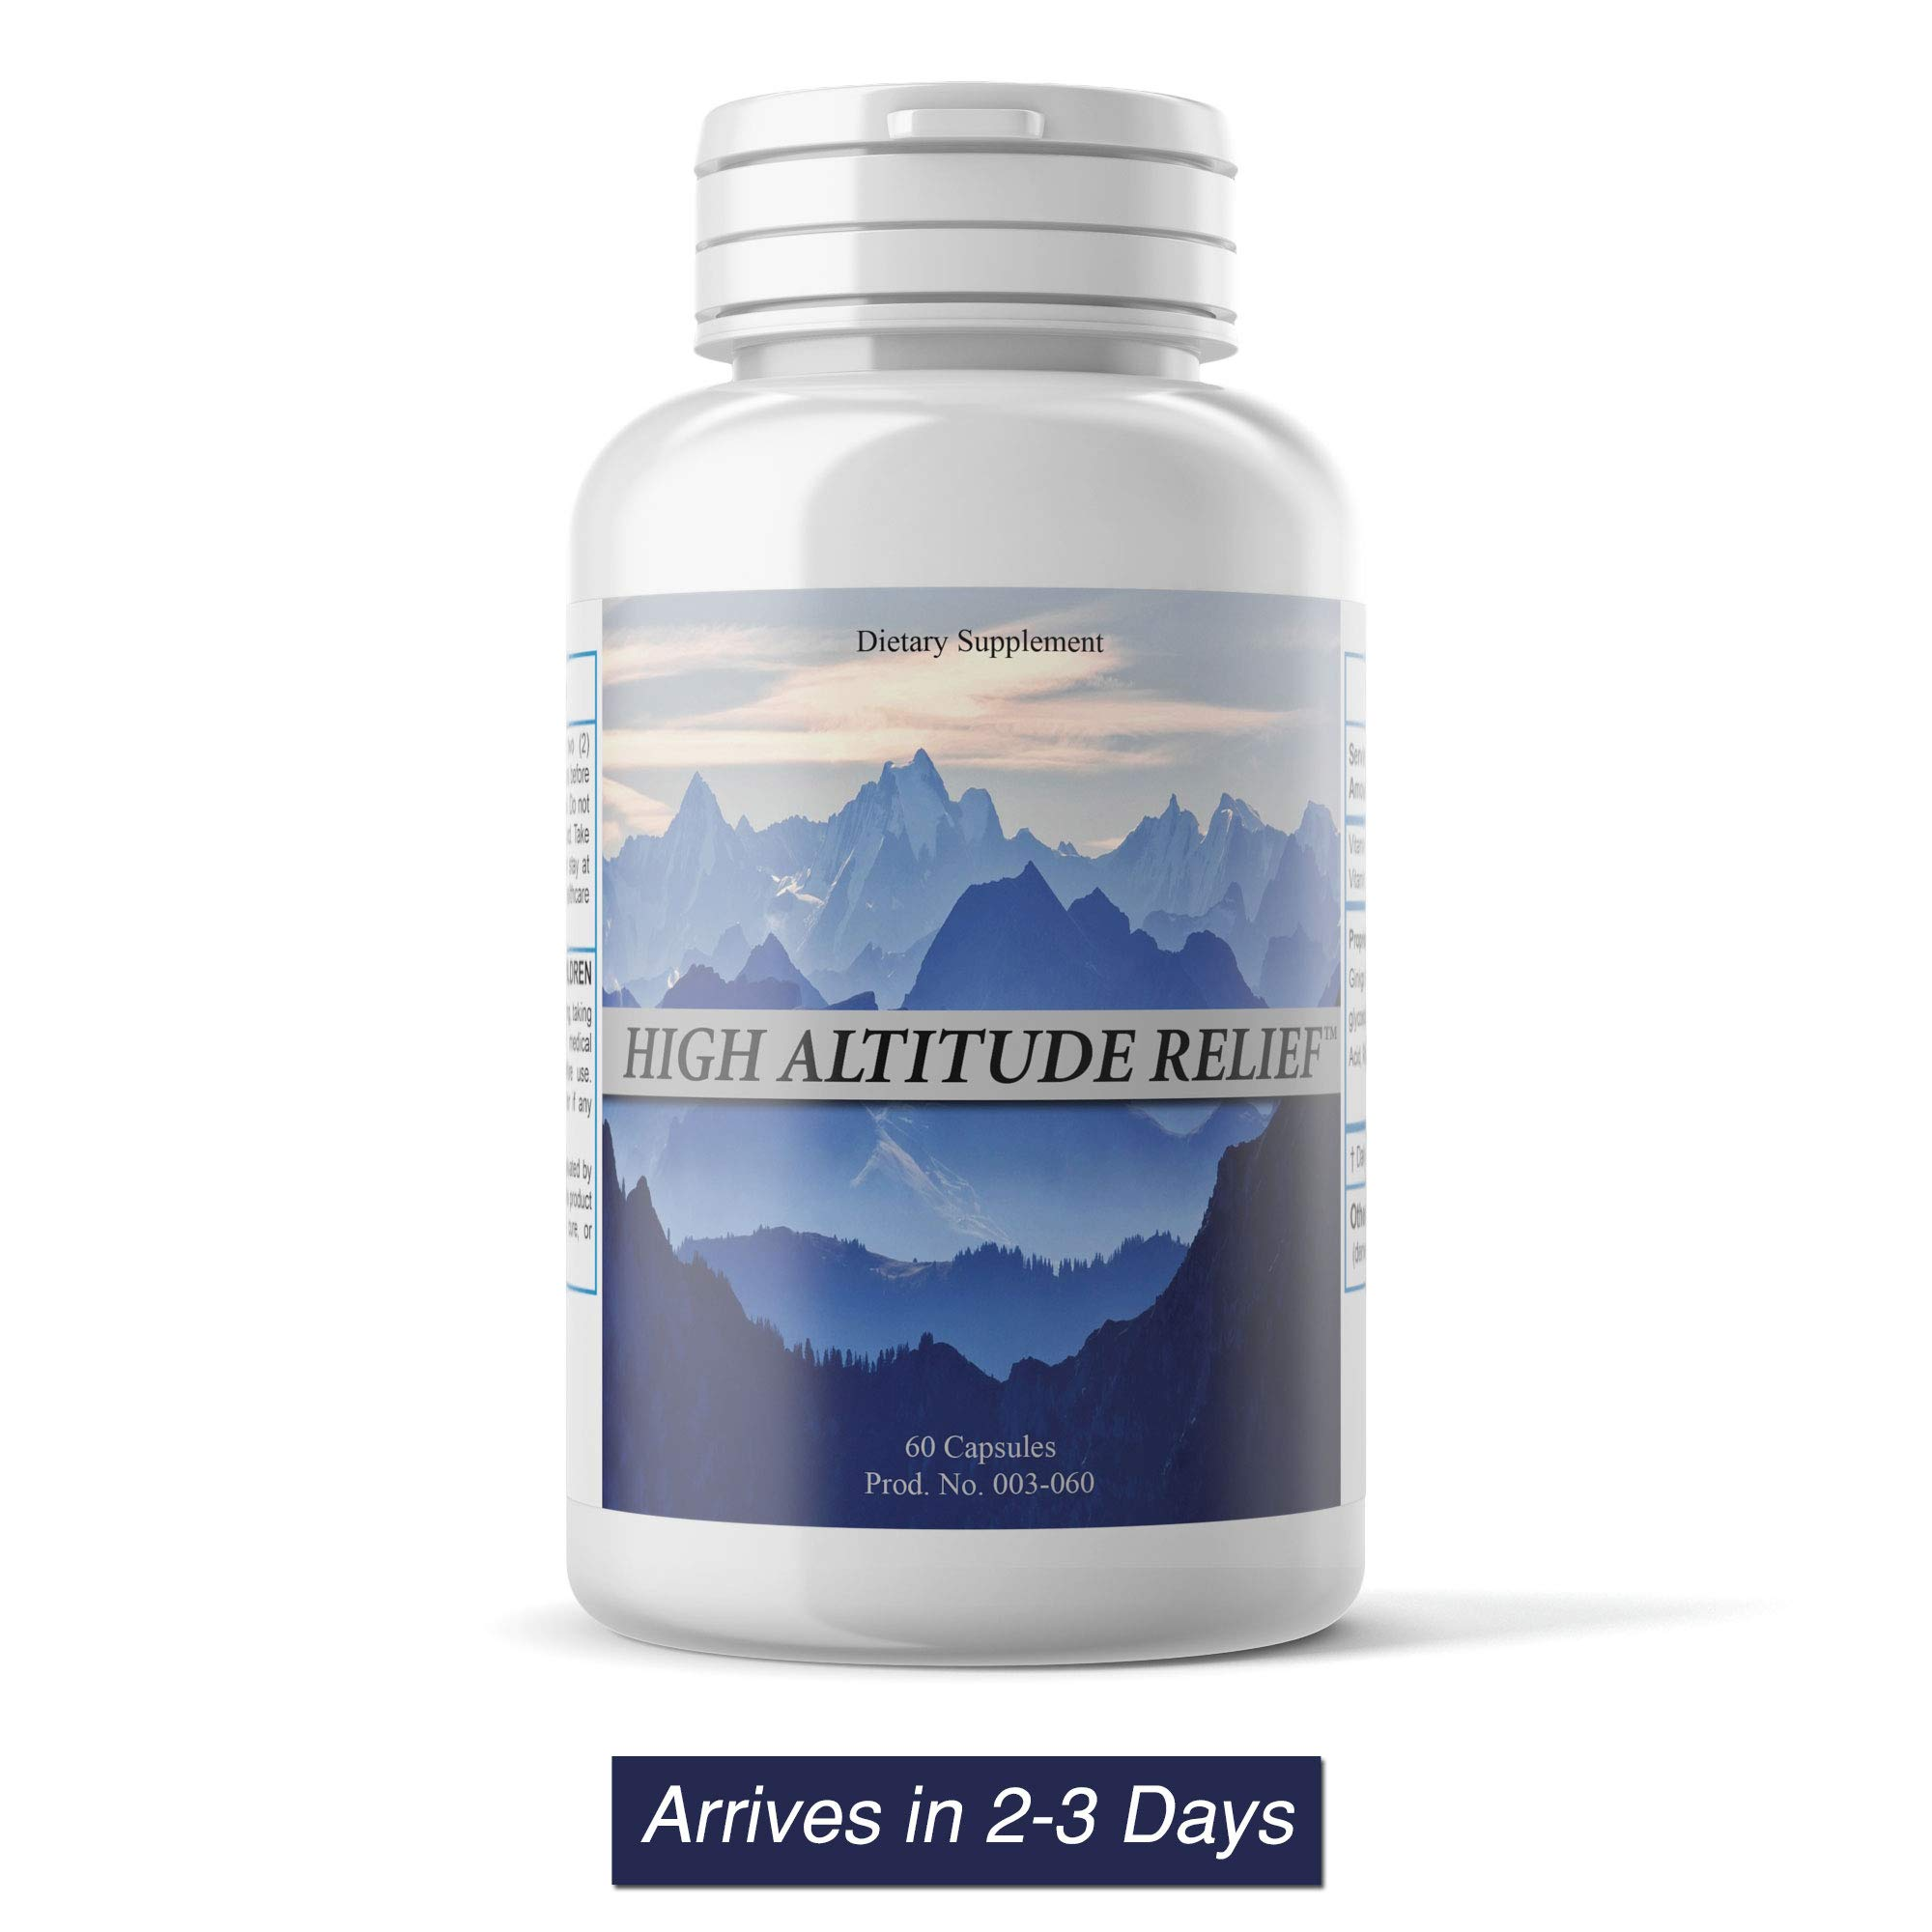 High Altitude Relief (60 Vegi Capsules) - Colorado's #1 Product for Altitude Sickness by Parker Pharmaceutical